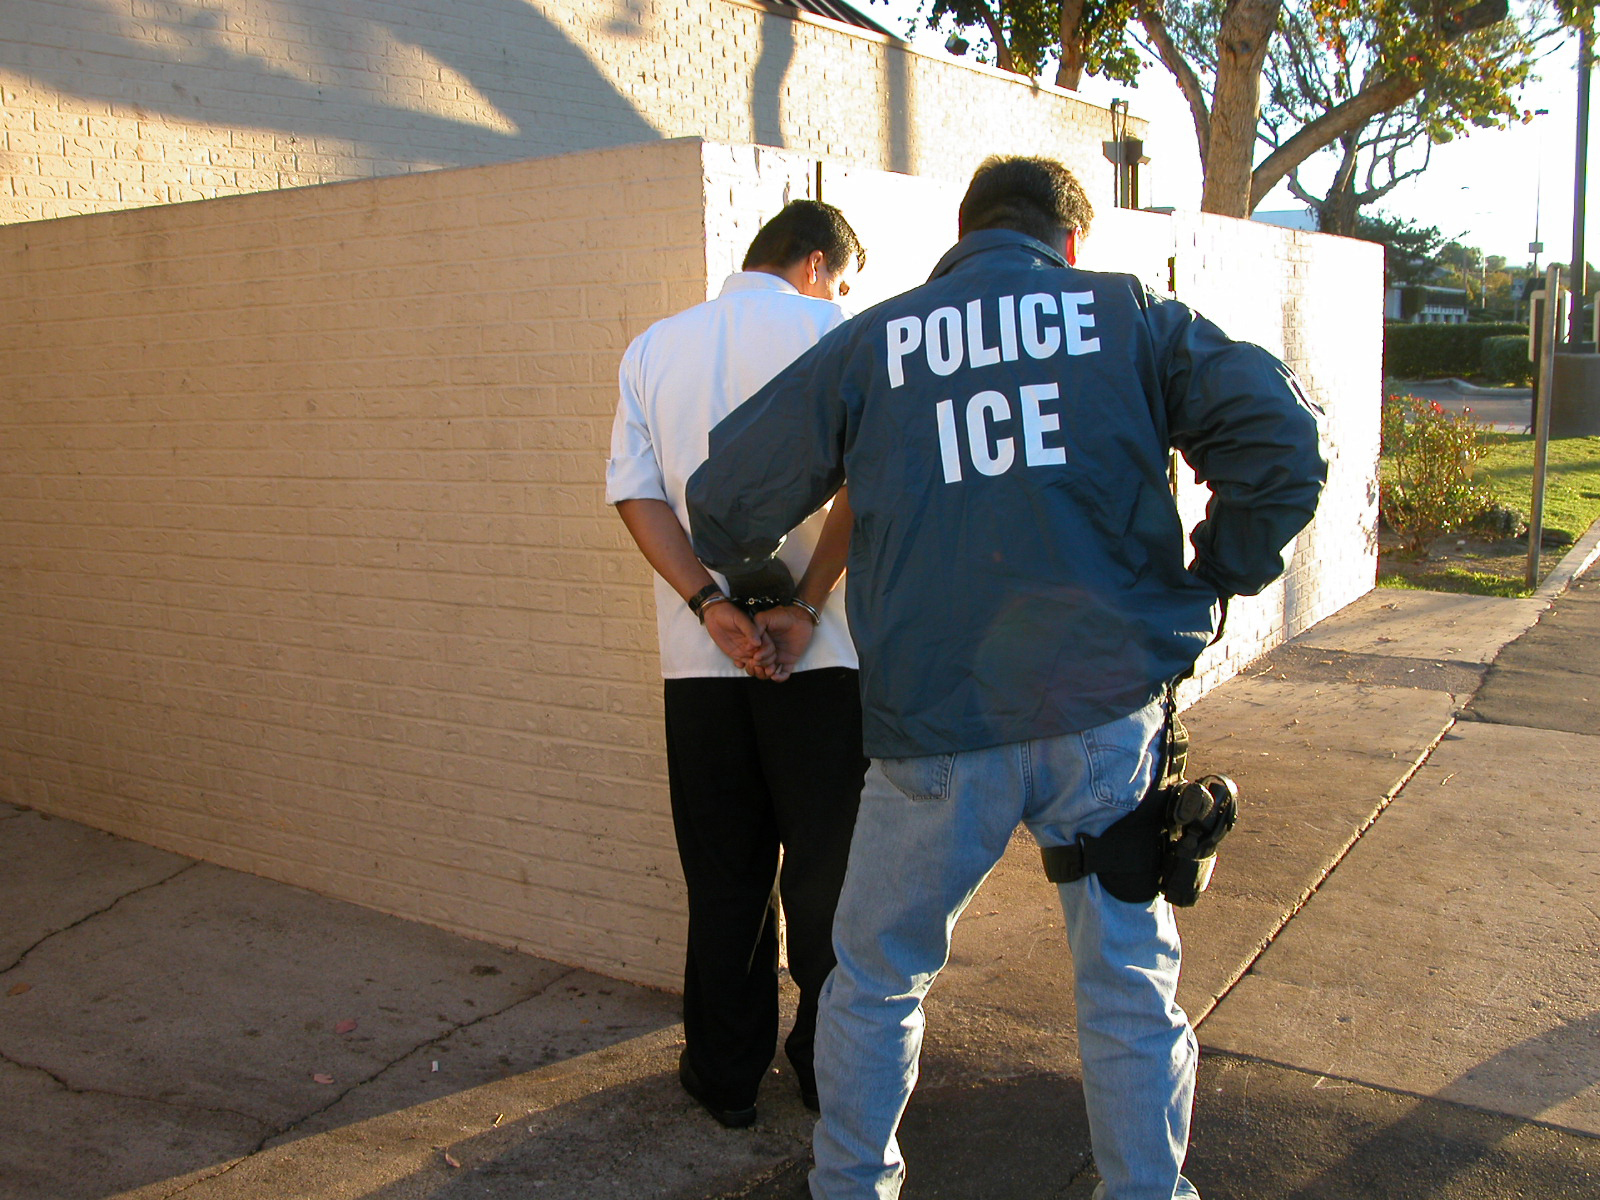 DHS issues new immigration guidance reversing 100-day deportation freeze